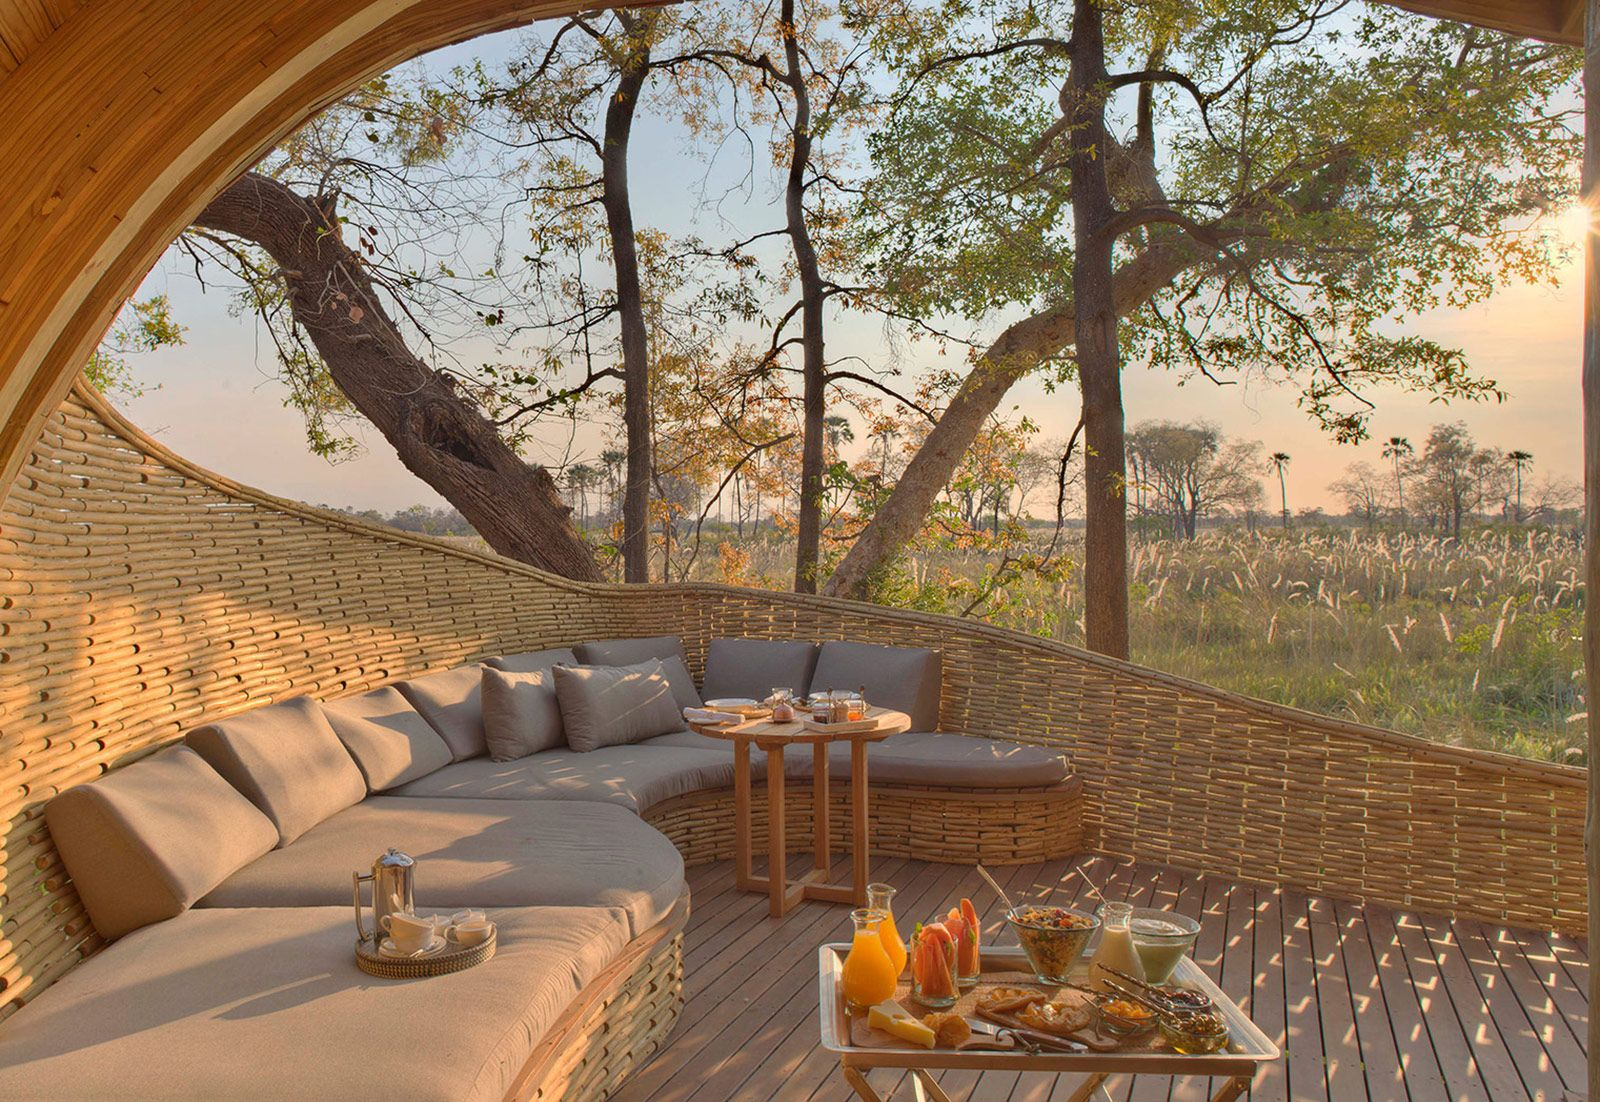 De Haute Qualite Sandibe Okavango Safari Lodge In Botswana